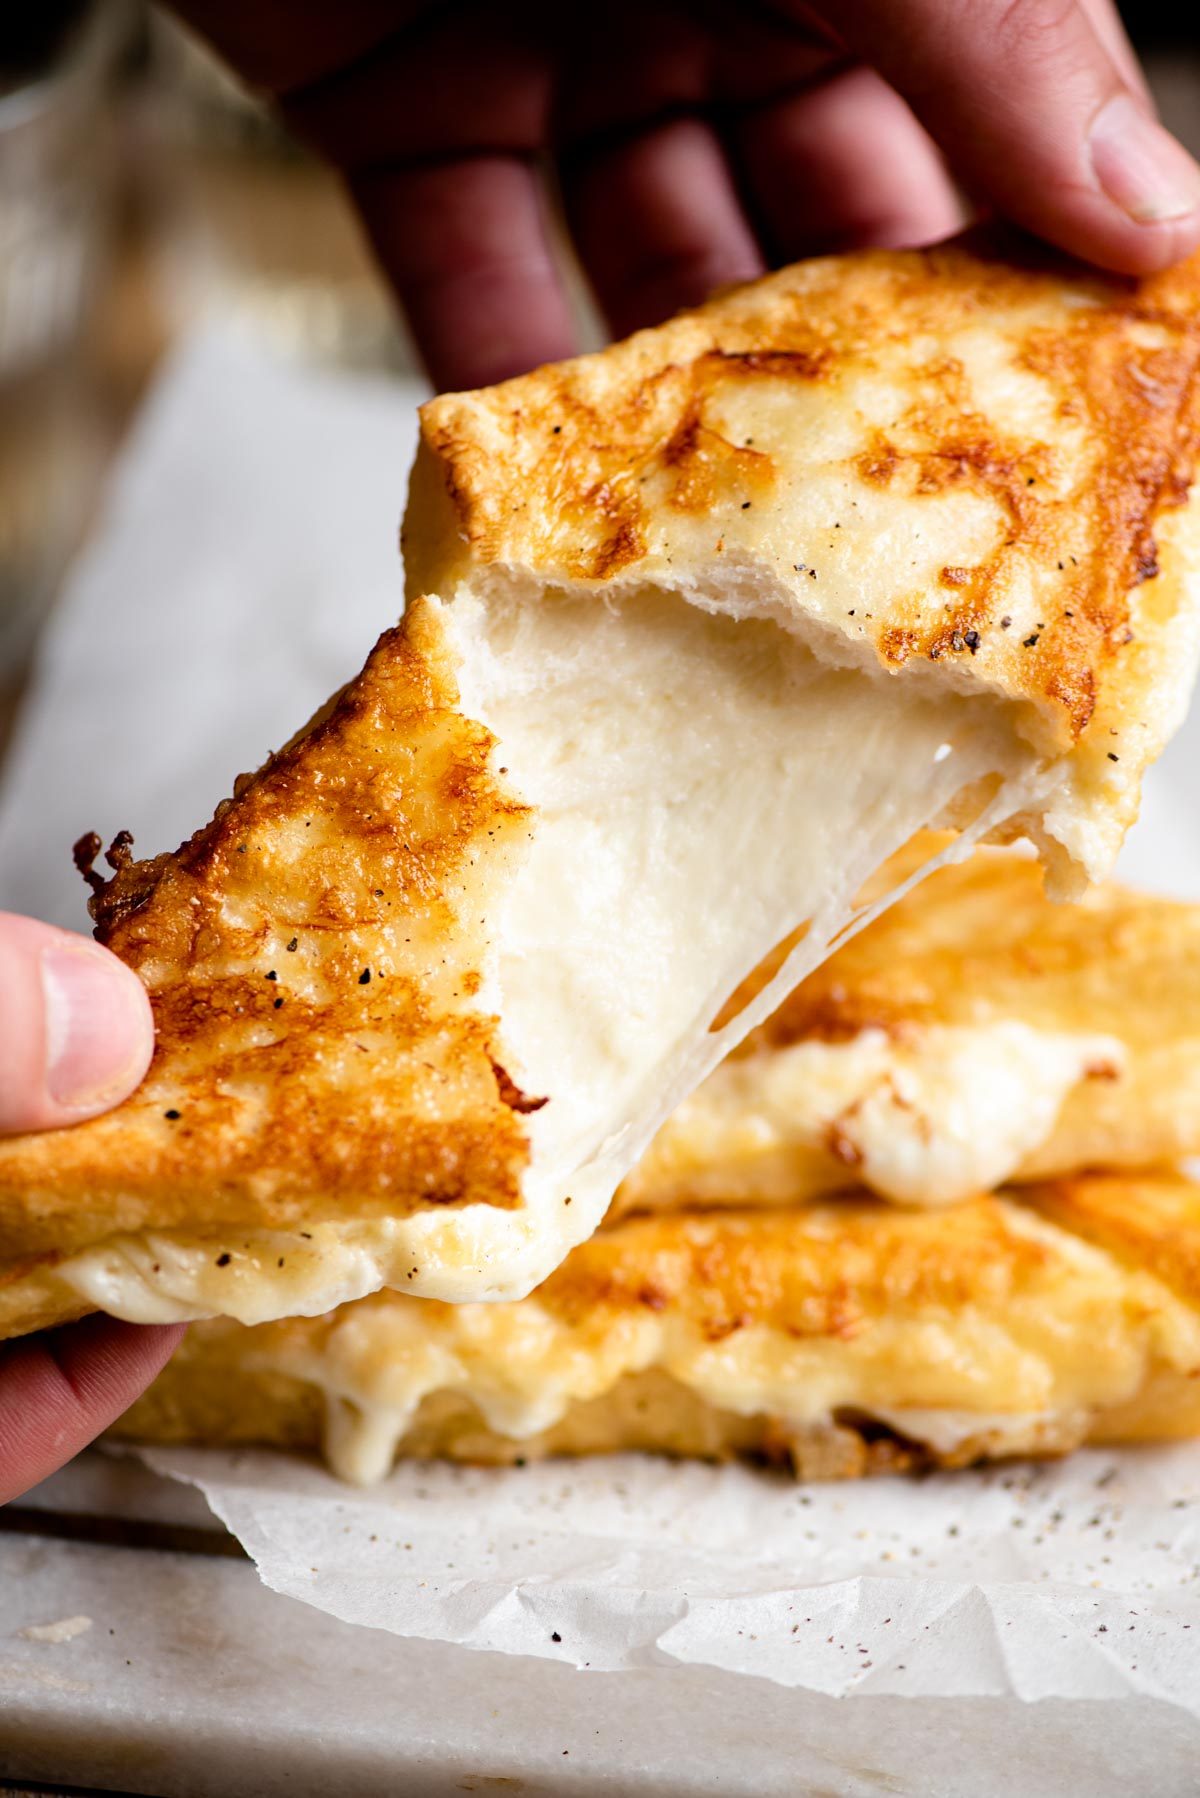 A close up of a fried mozzarella sandwich broken open with cheese oozing and stretching